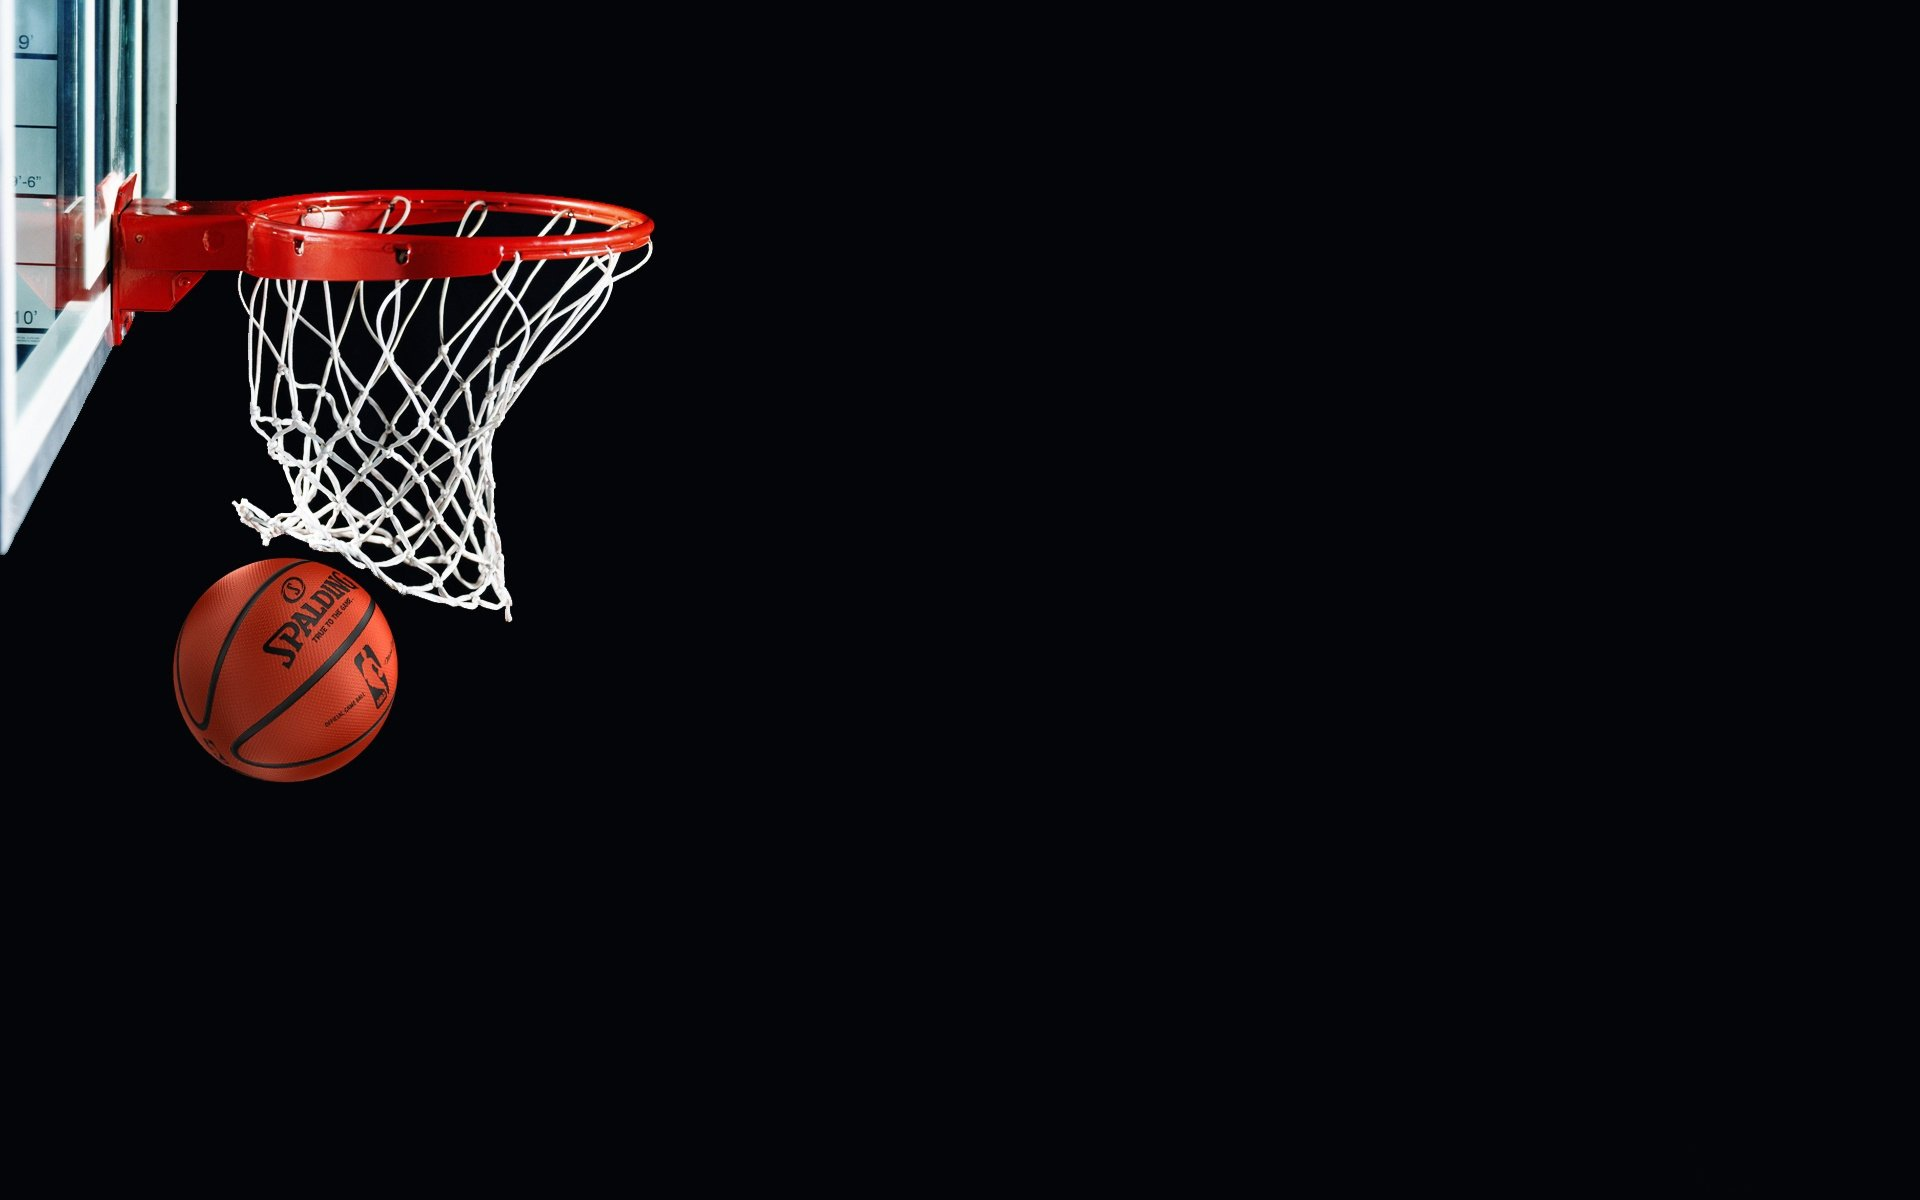 Wallpaper Basketball